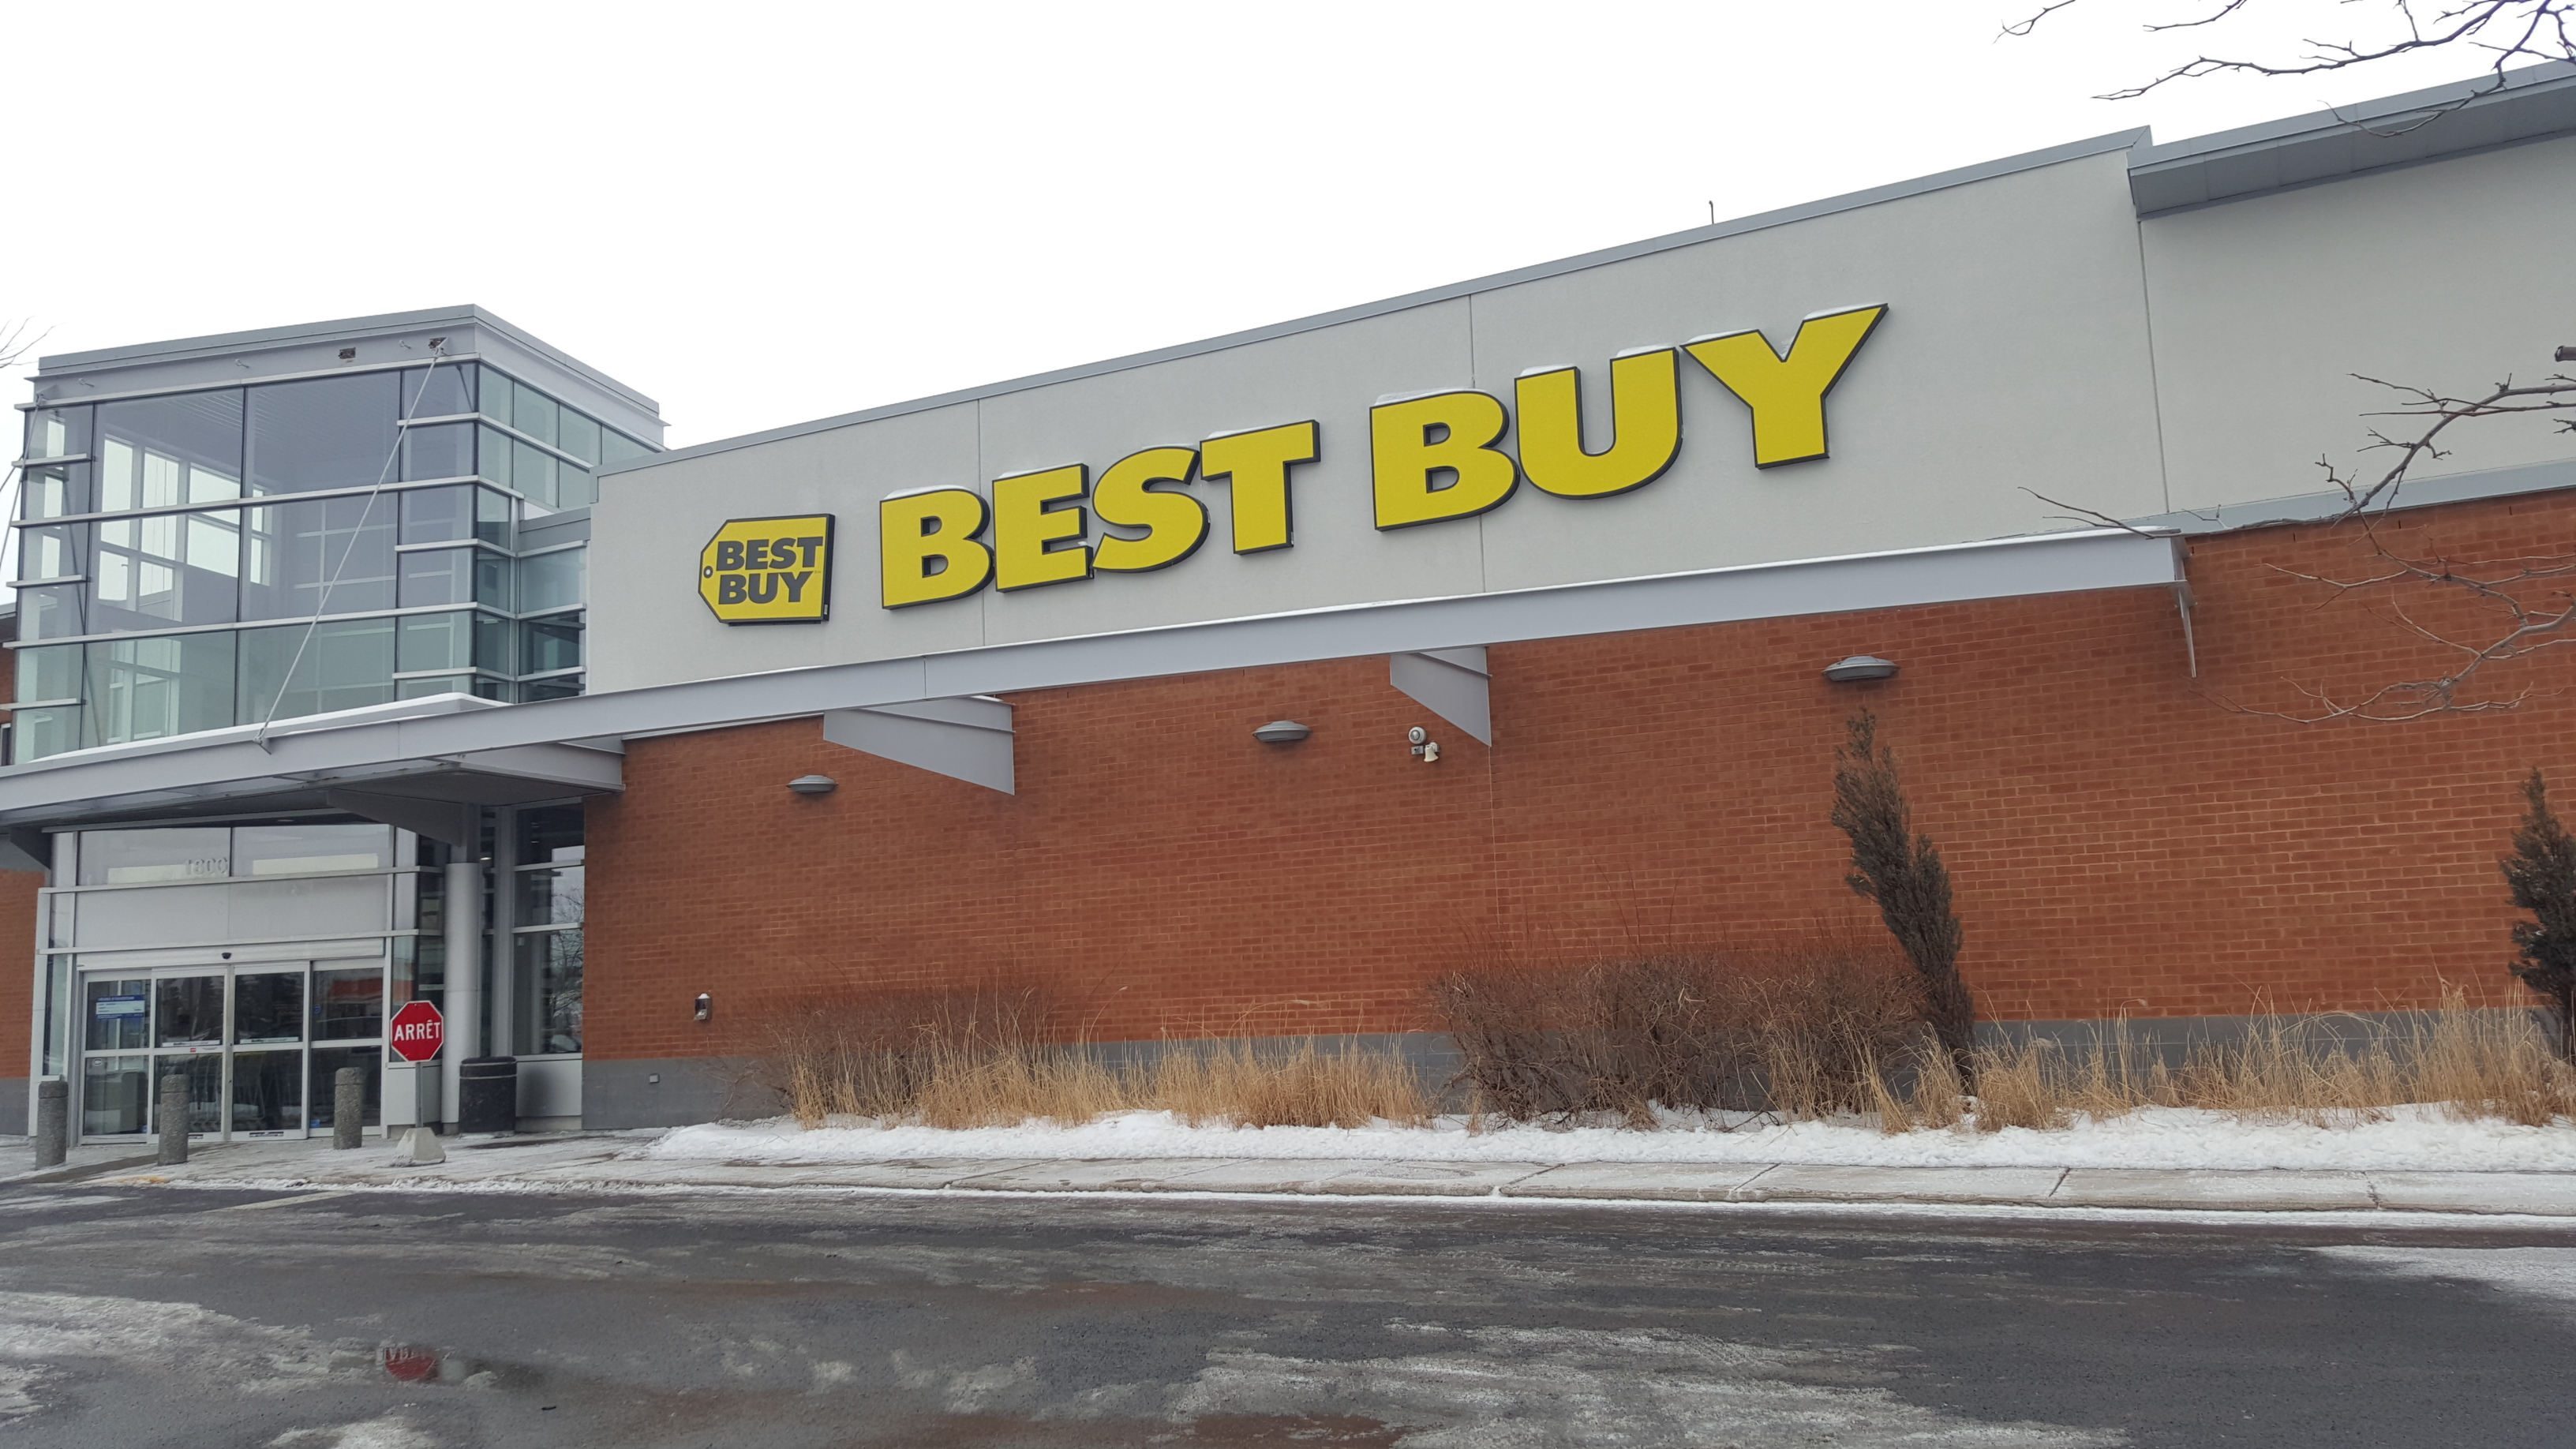 best buy in longueuil 1800 rue auguste computer repair in longueuil opendi longueuil. Black Bedroom Furniture Sets. Home Design Ideas